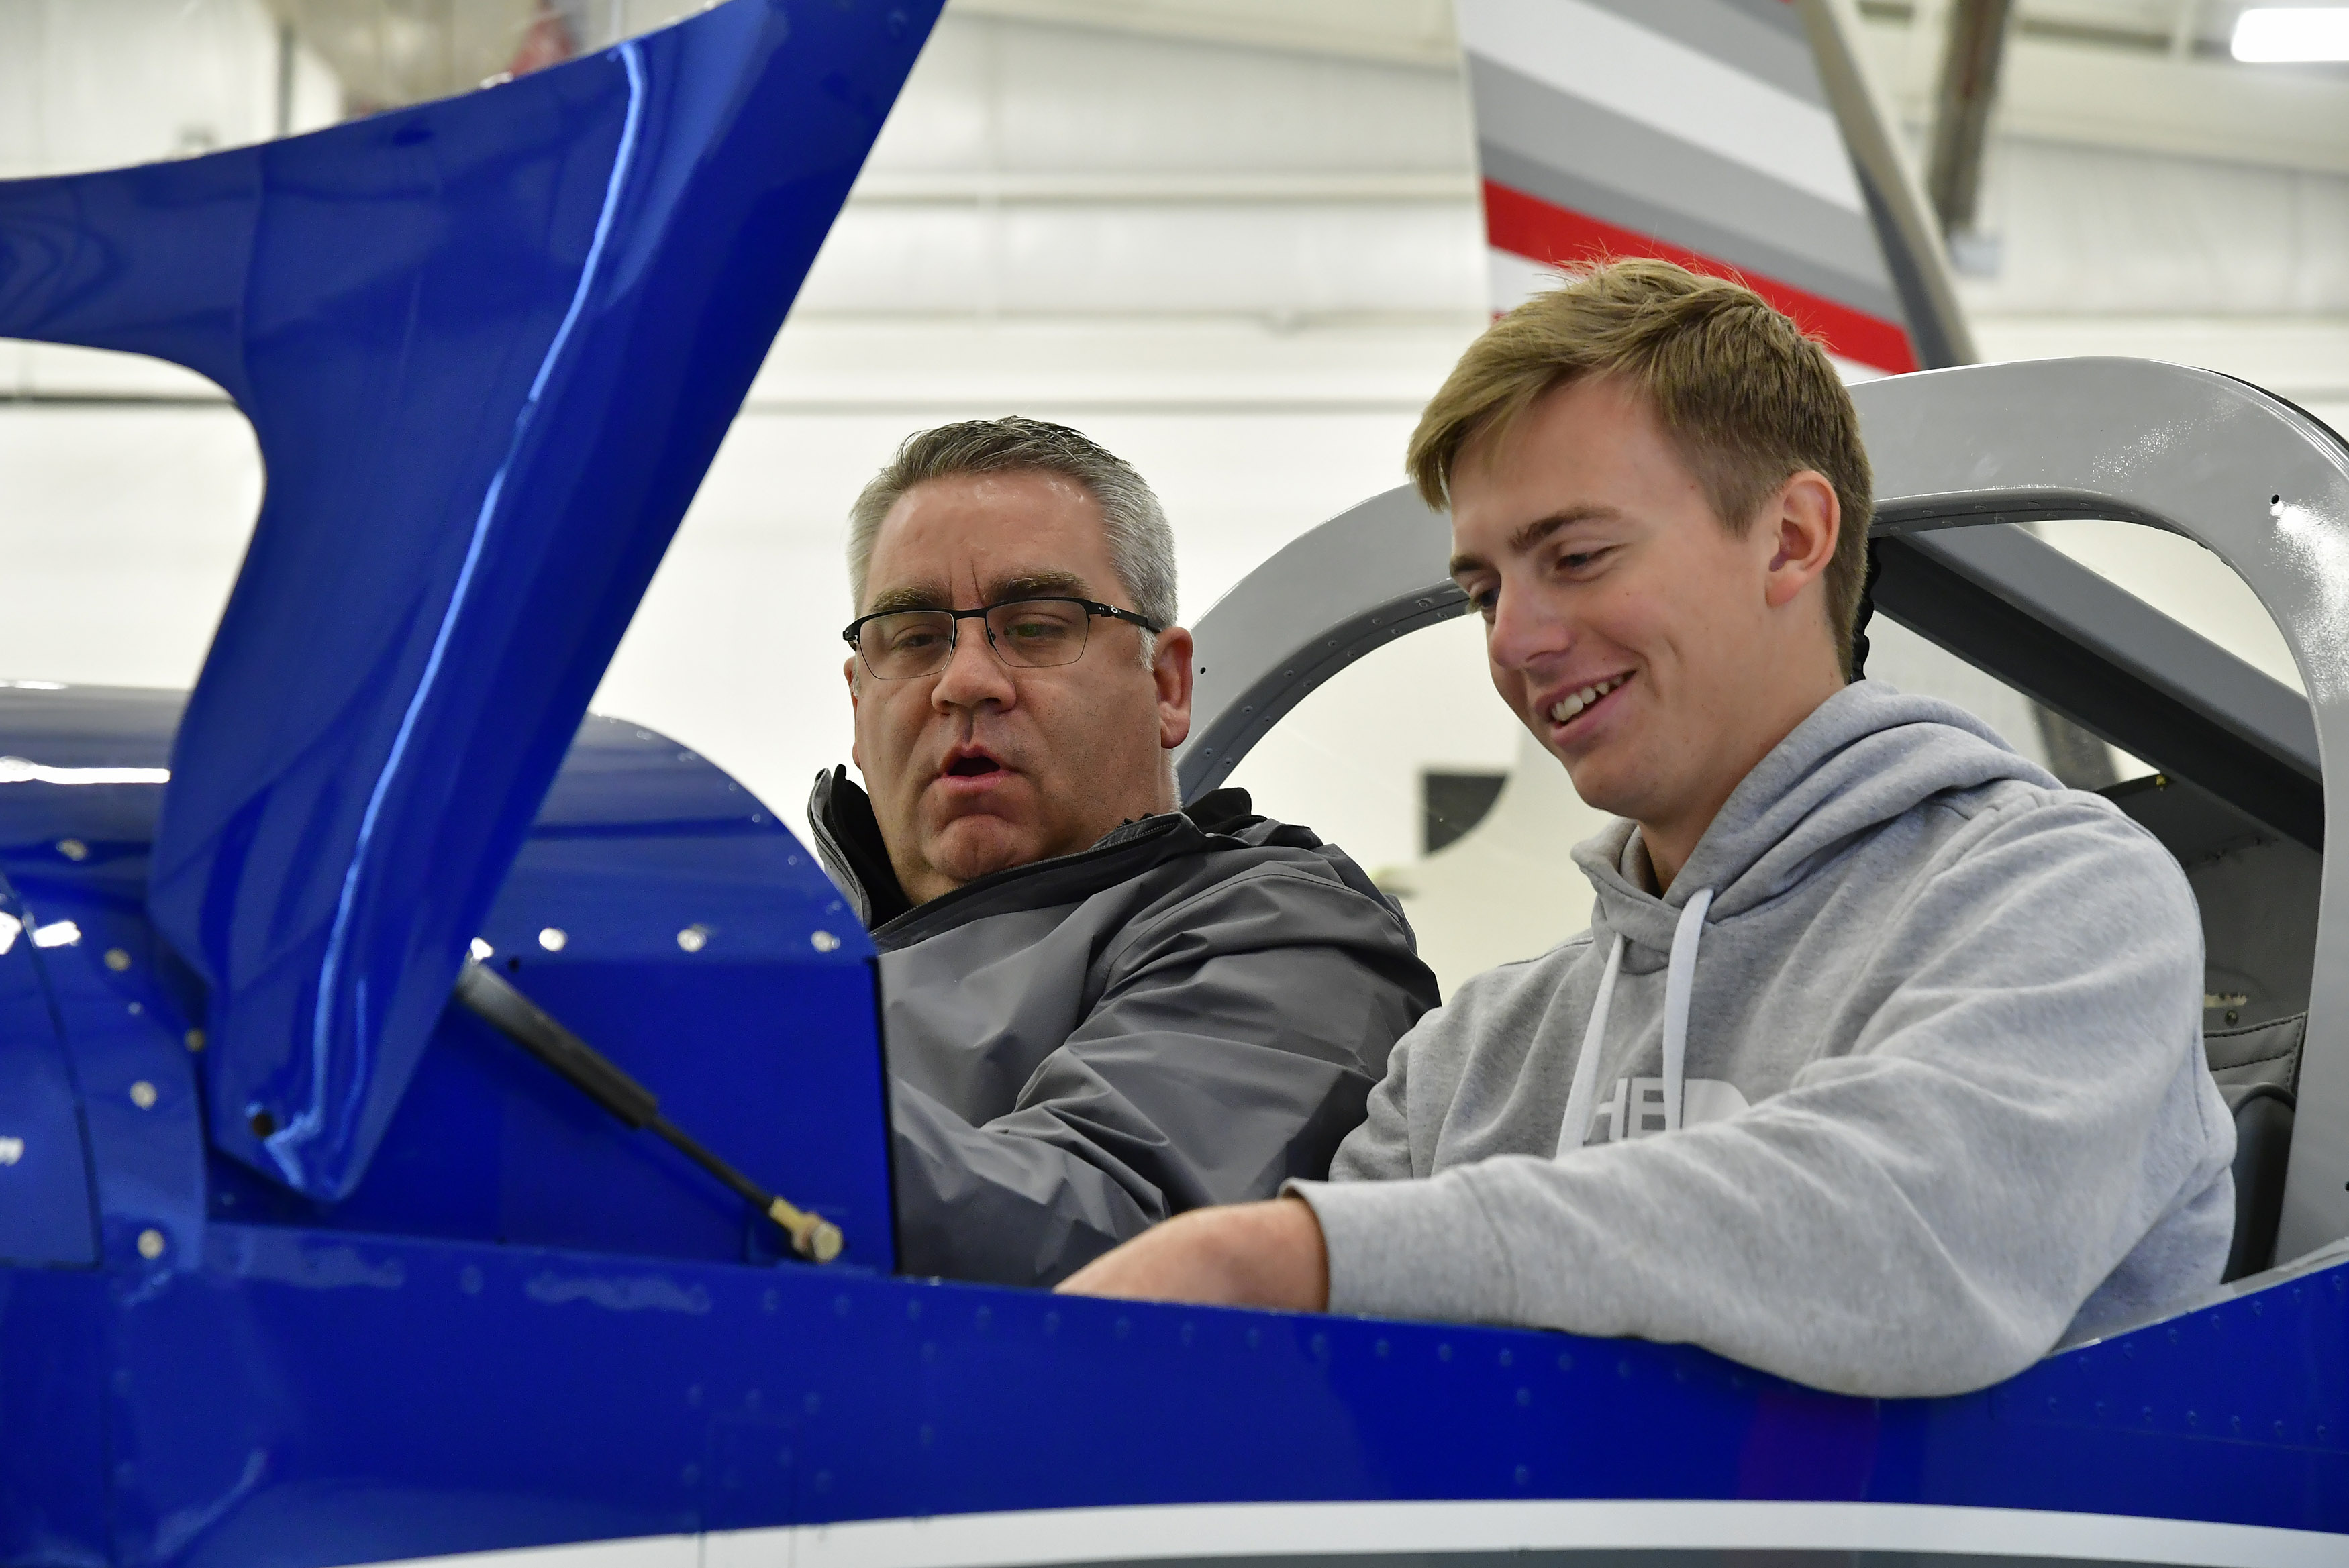 Phillip Campbell familiarizes a Van's Aircraft RV-12 cockpit with McKinney High School student Bryan Soltys-Niemann during an aviation class at McKinney National Airport in McKinney, Texas. Photo by David Tulis.